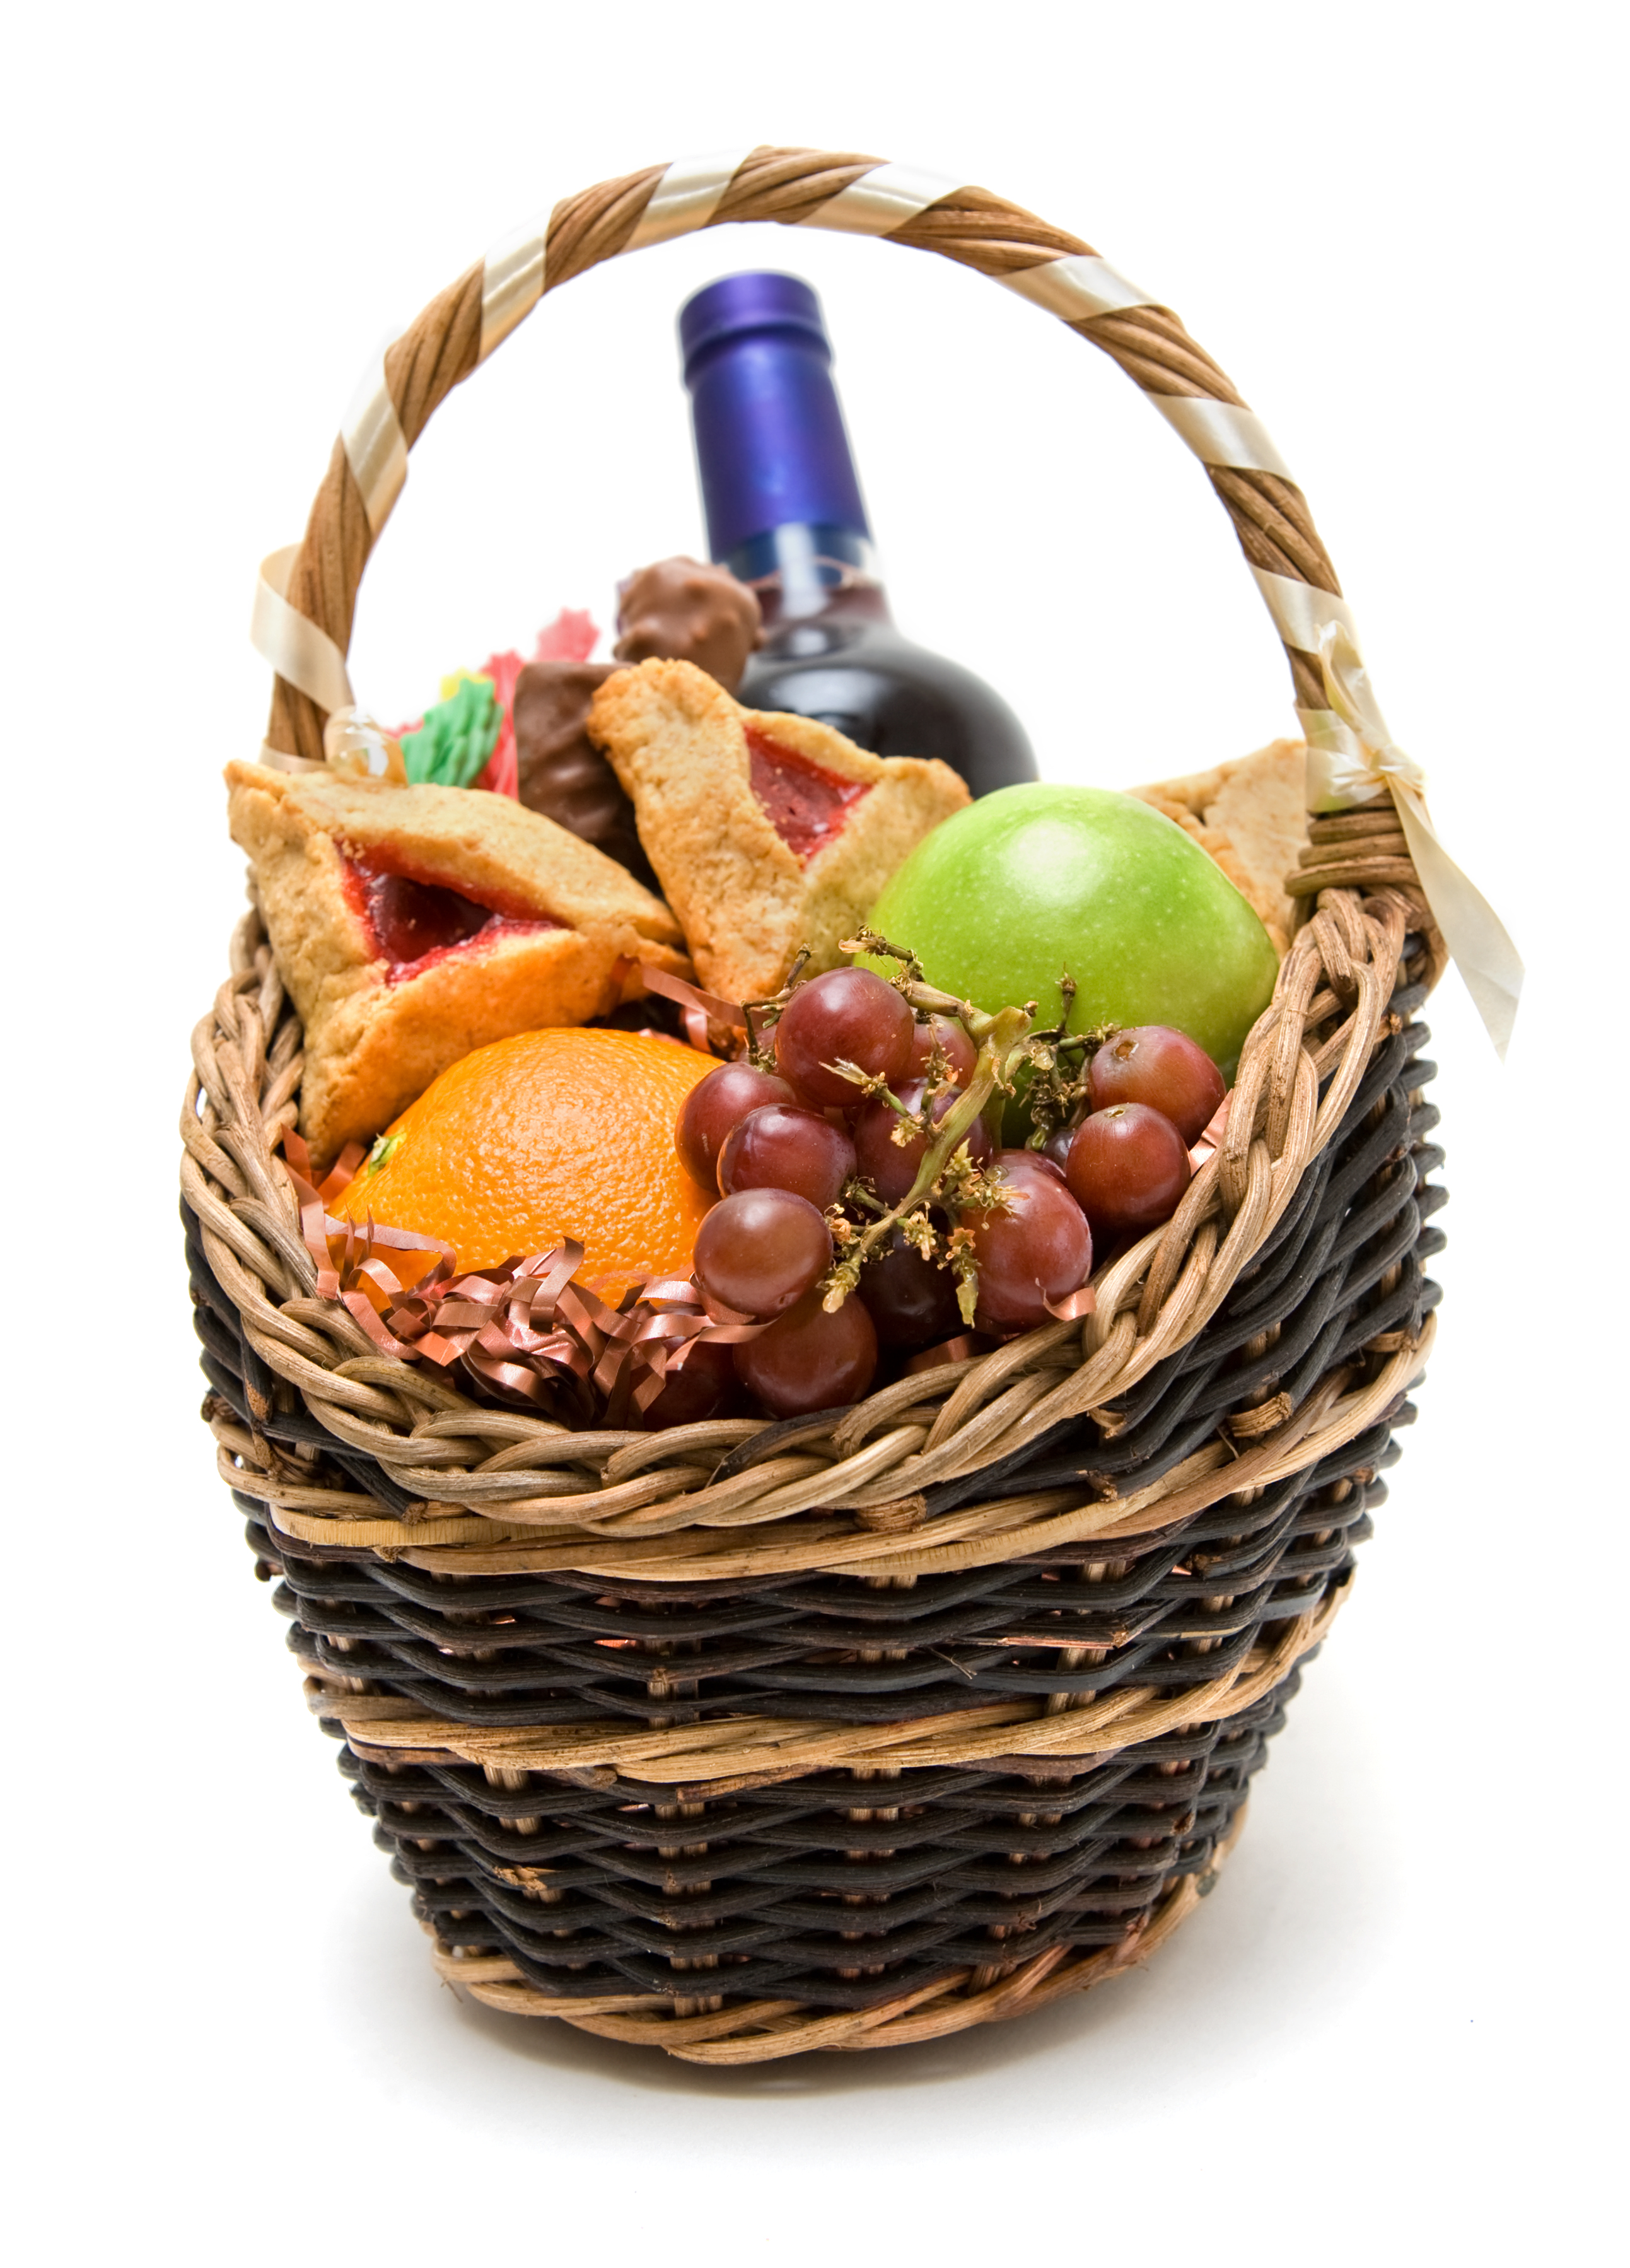 Purim basket with fruit, candy, wine and hamentaschen.